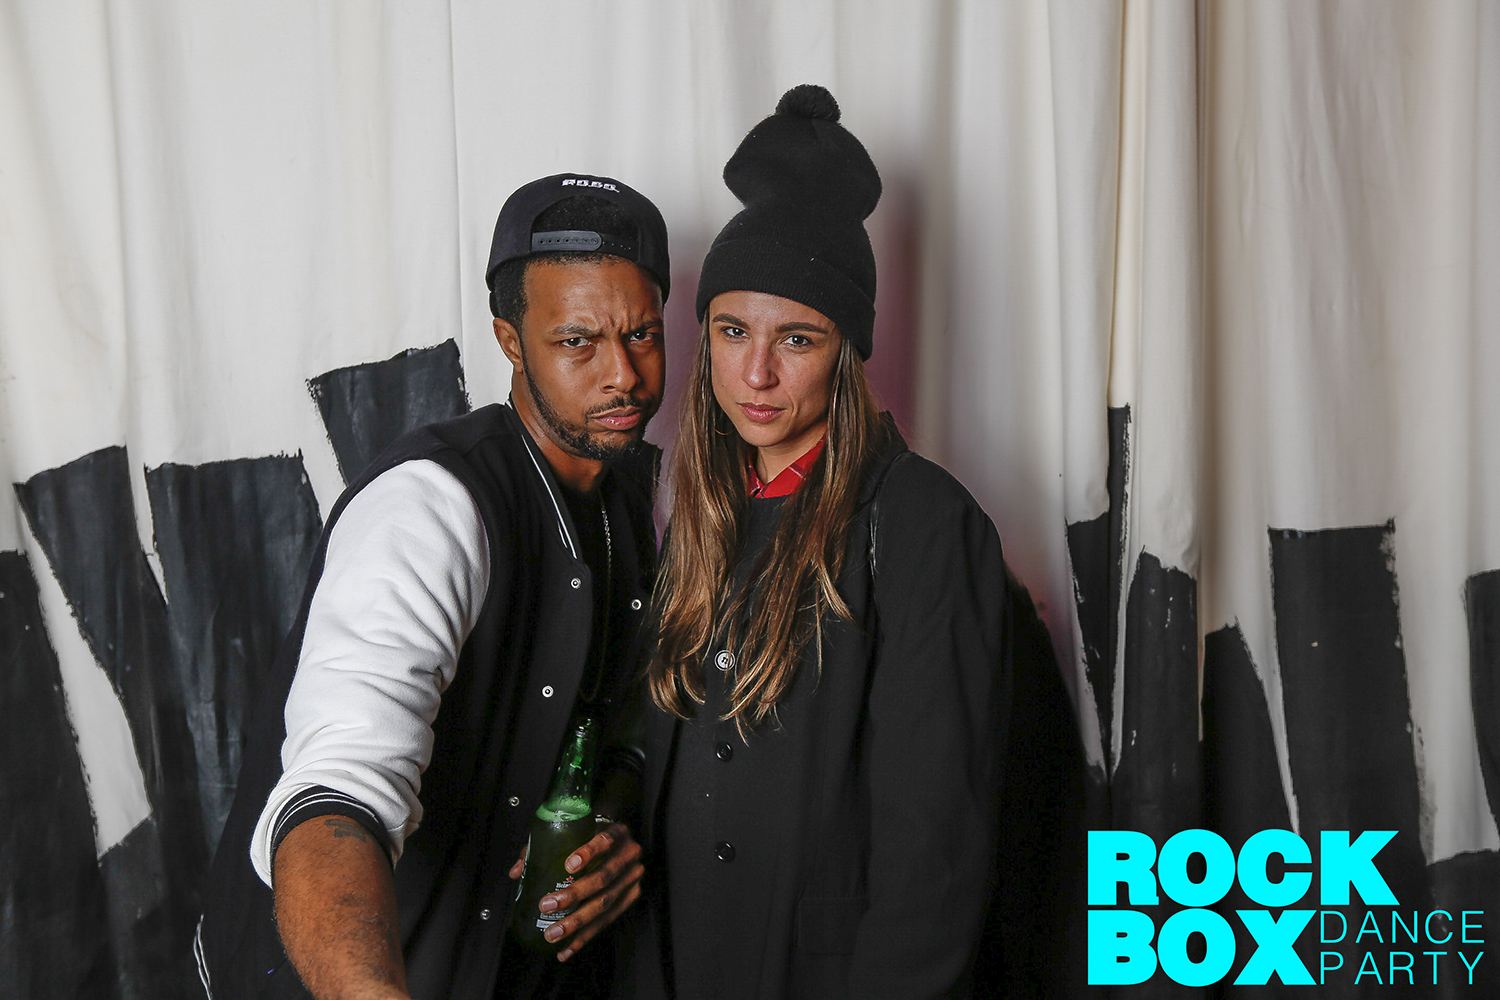 Rock box feb 2015-0145.jpg